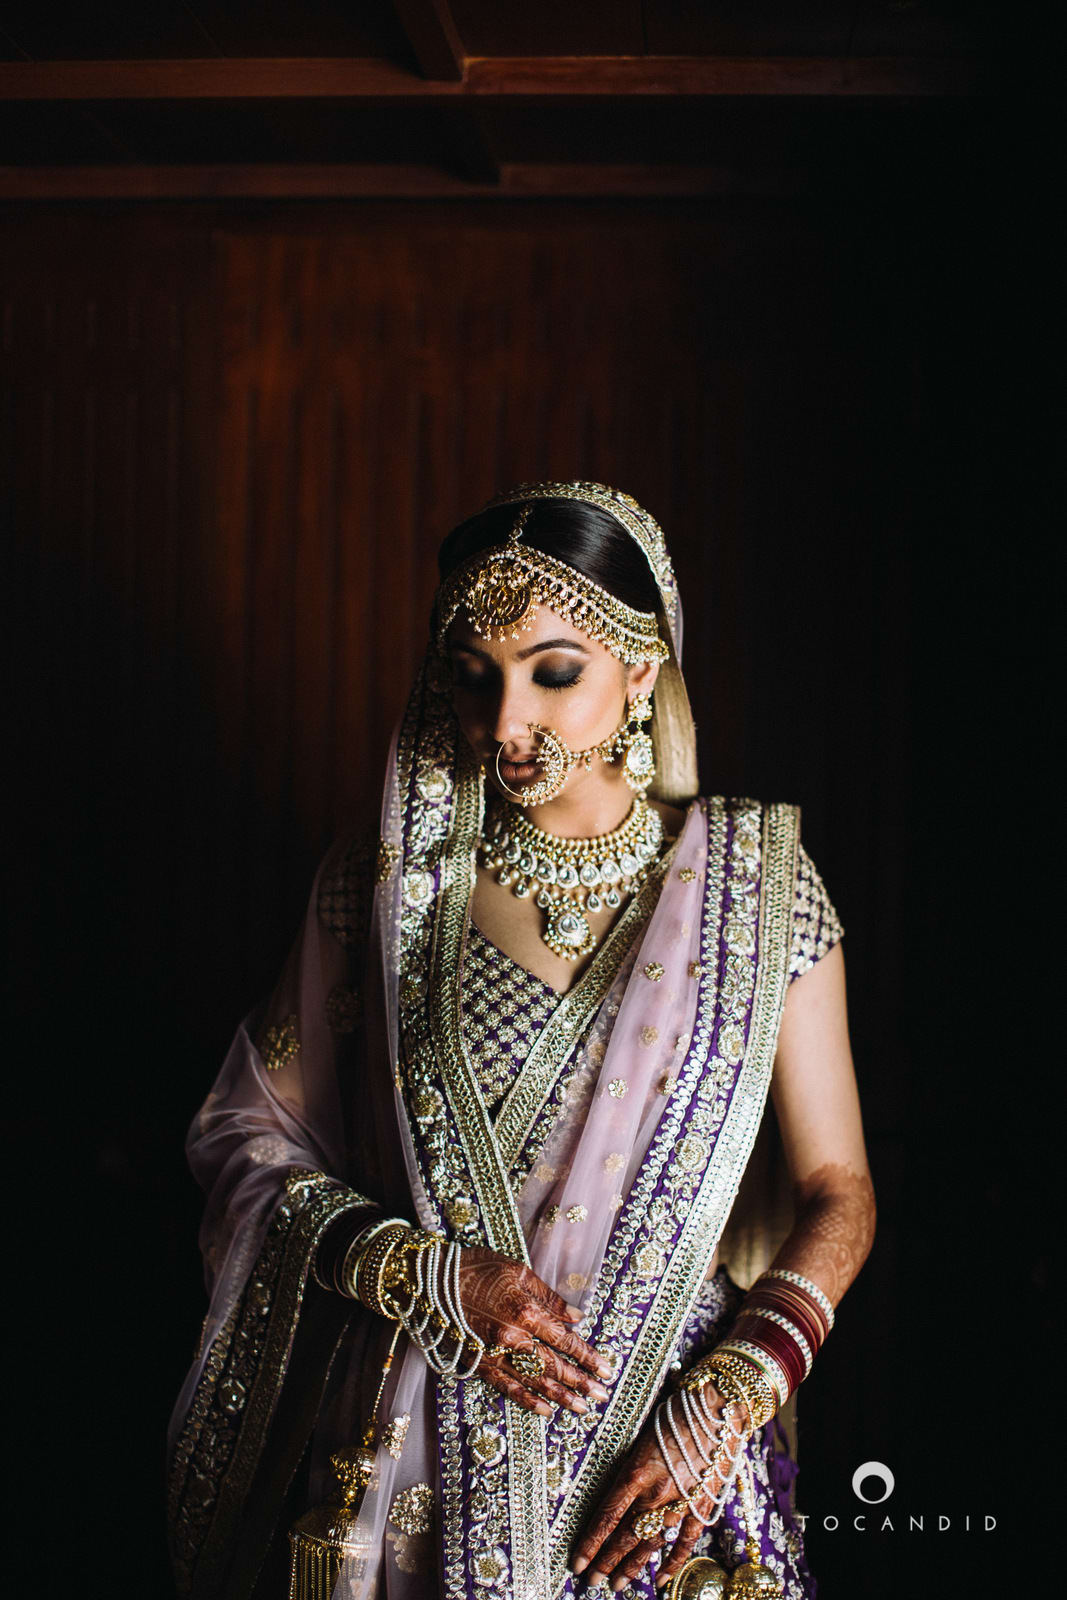 the royal bride!:into candid photography, sabyasachi couture pvt ltd